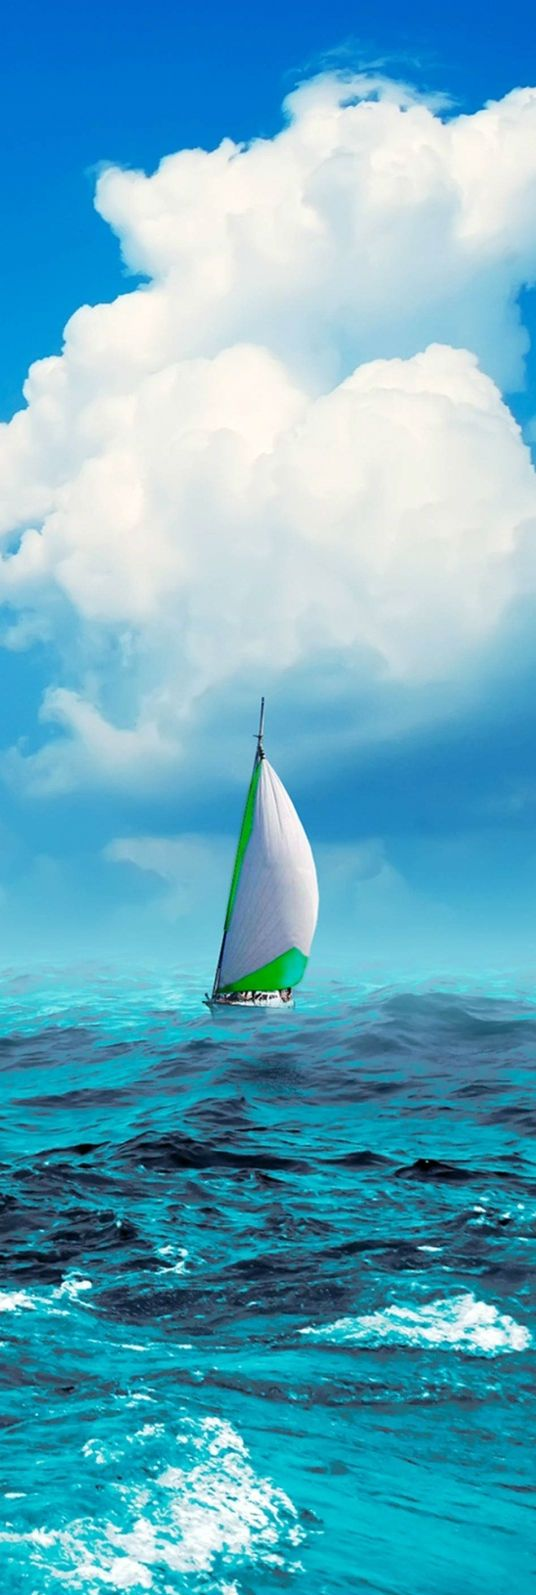 Sailboat in the Sea #sailing